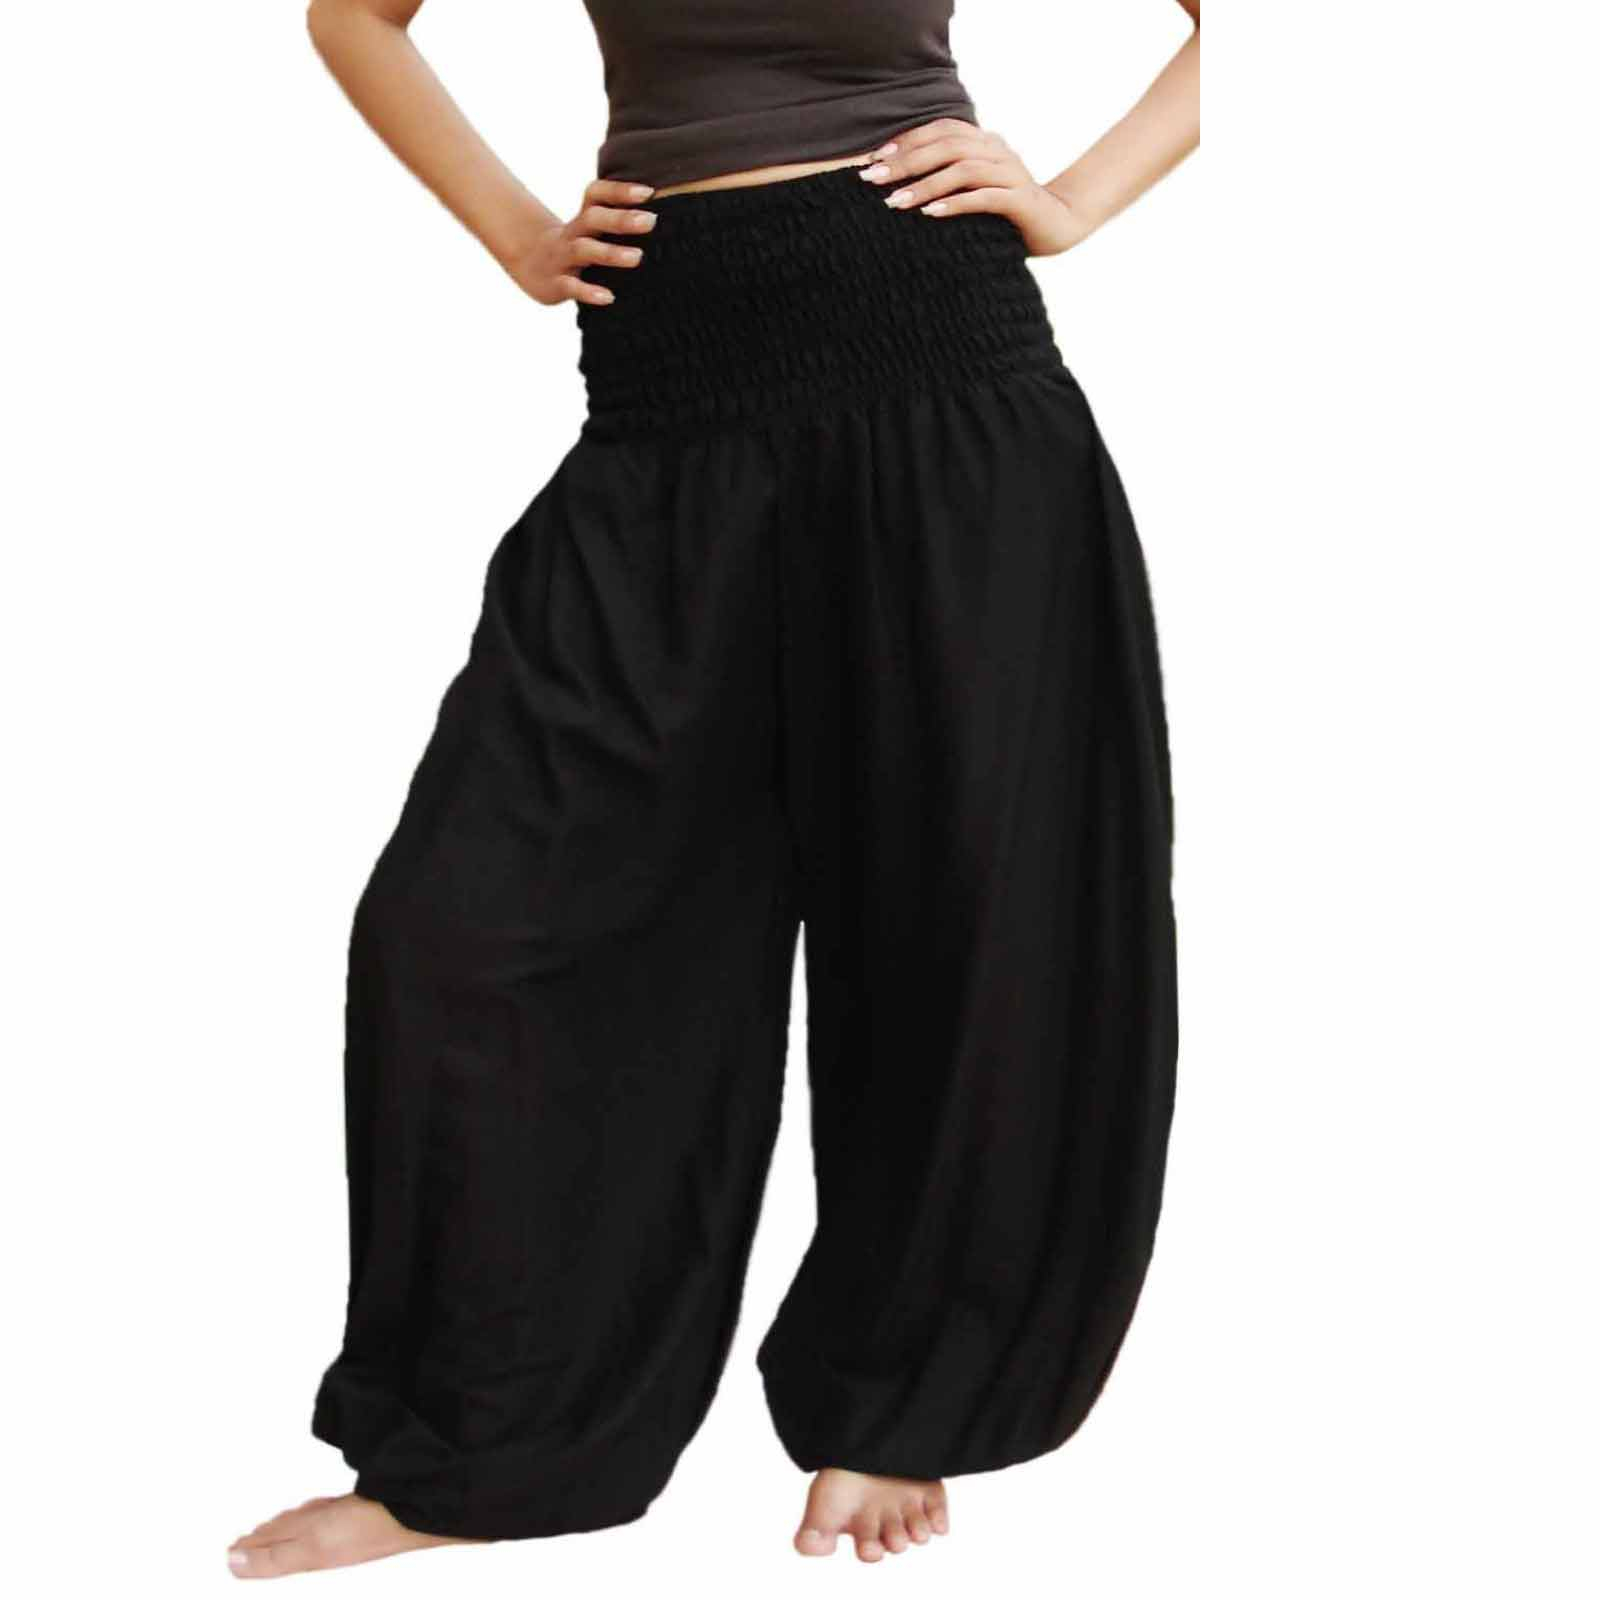 plus size harem pants photo - 1